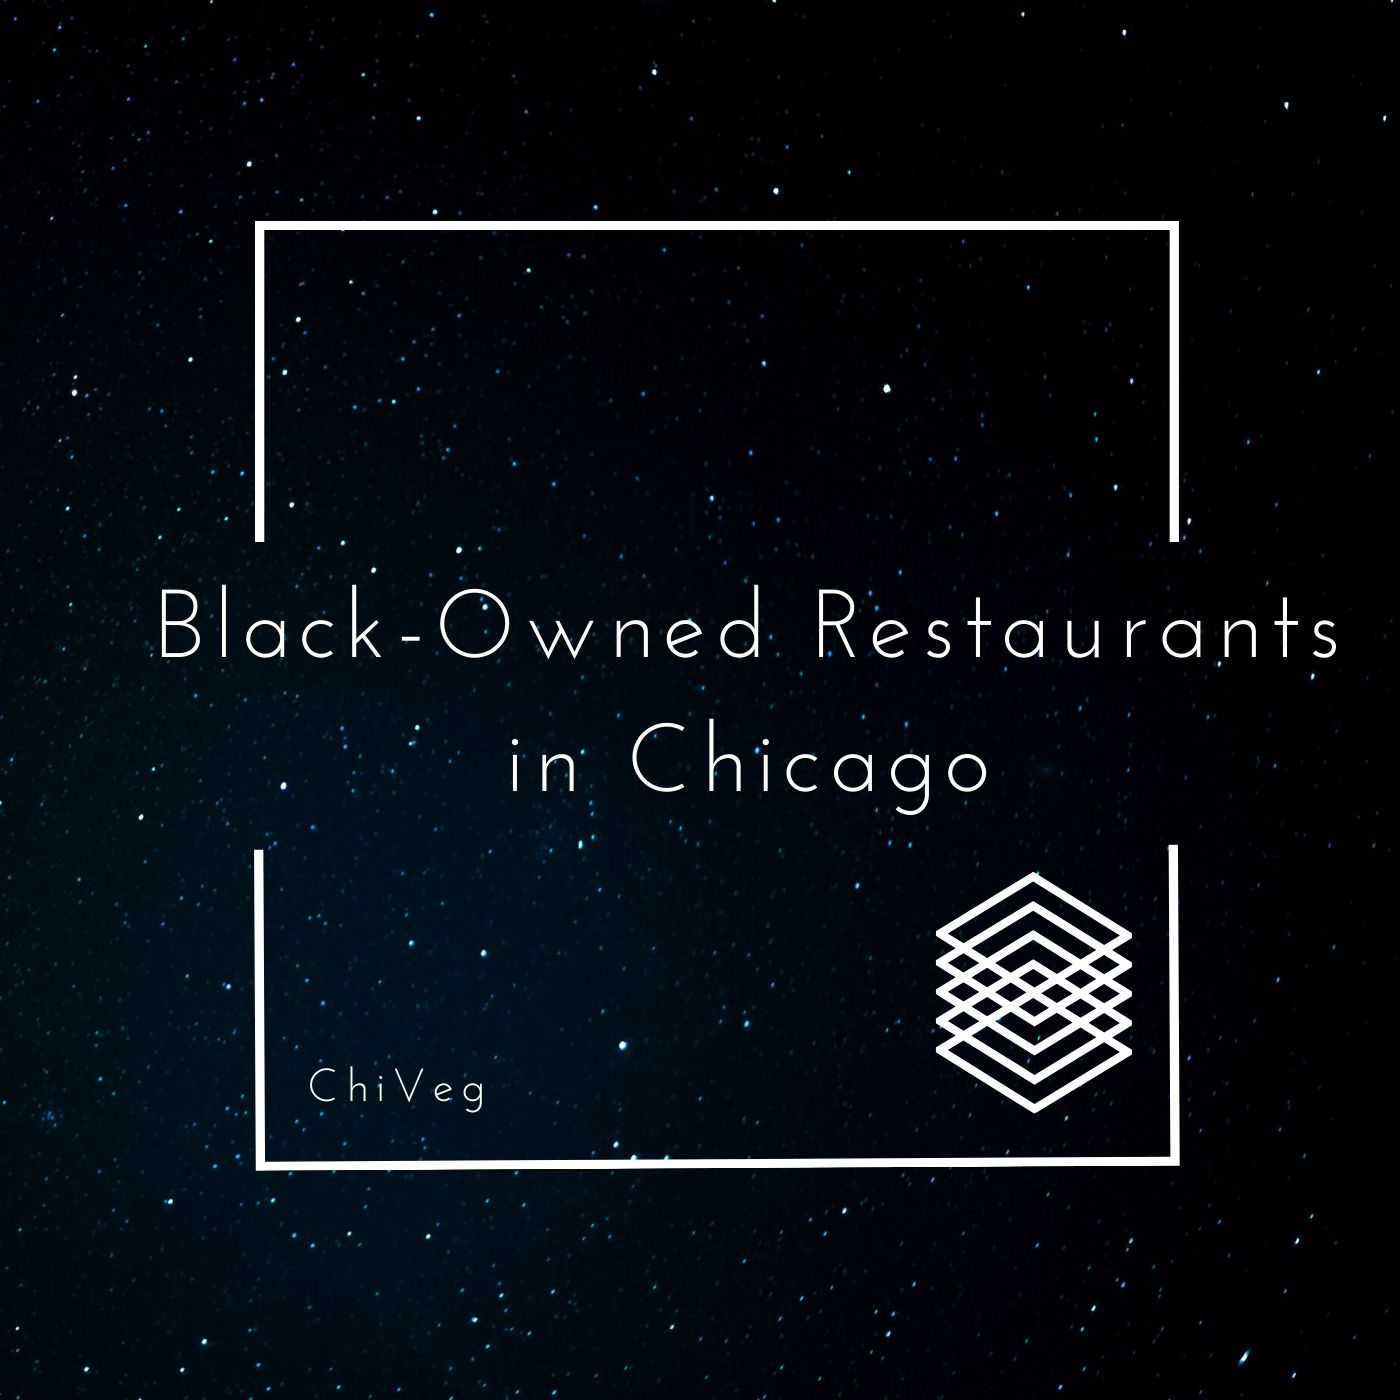 Black-Owned Restaurants in Chicago from ChiVeg made through Canvas